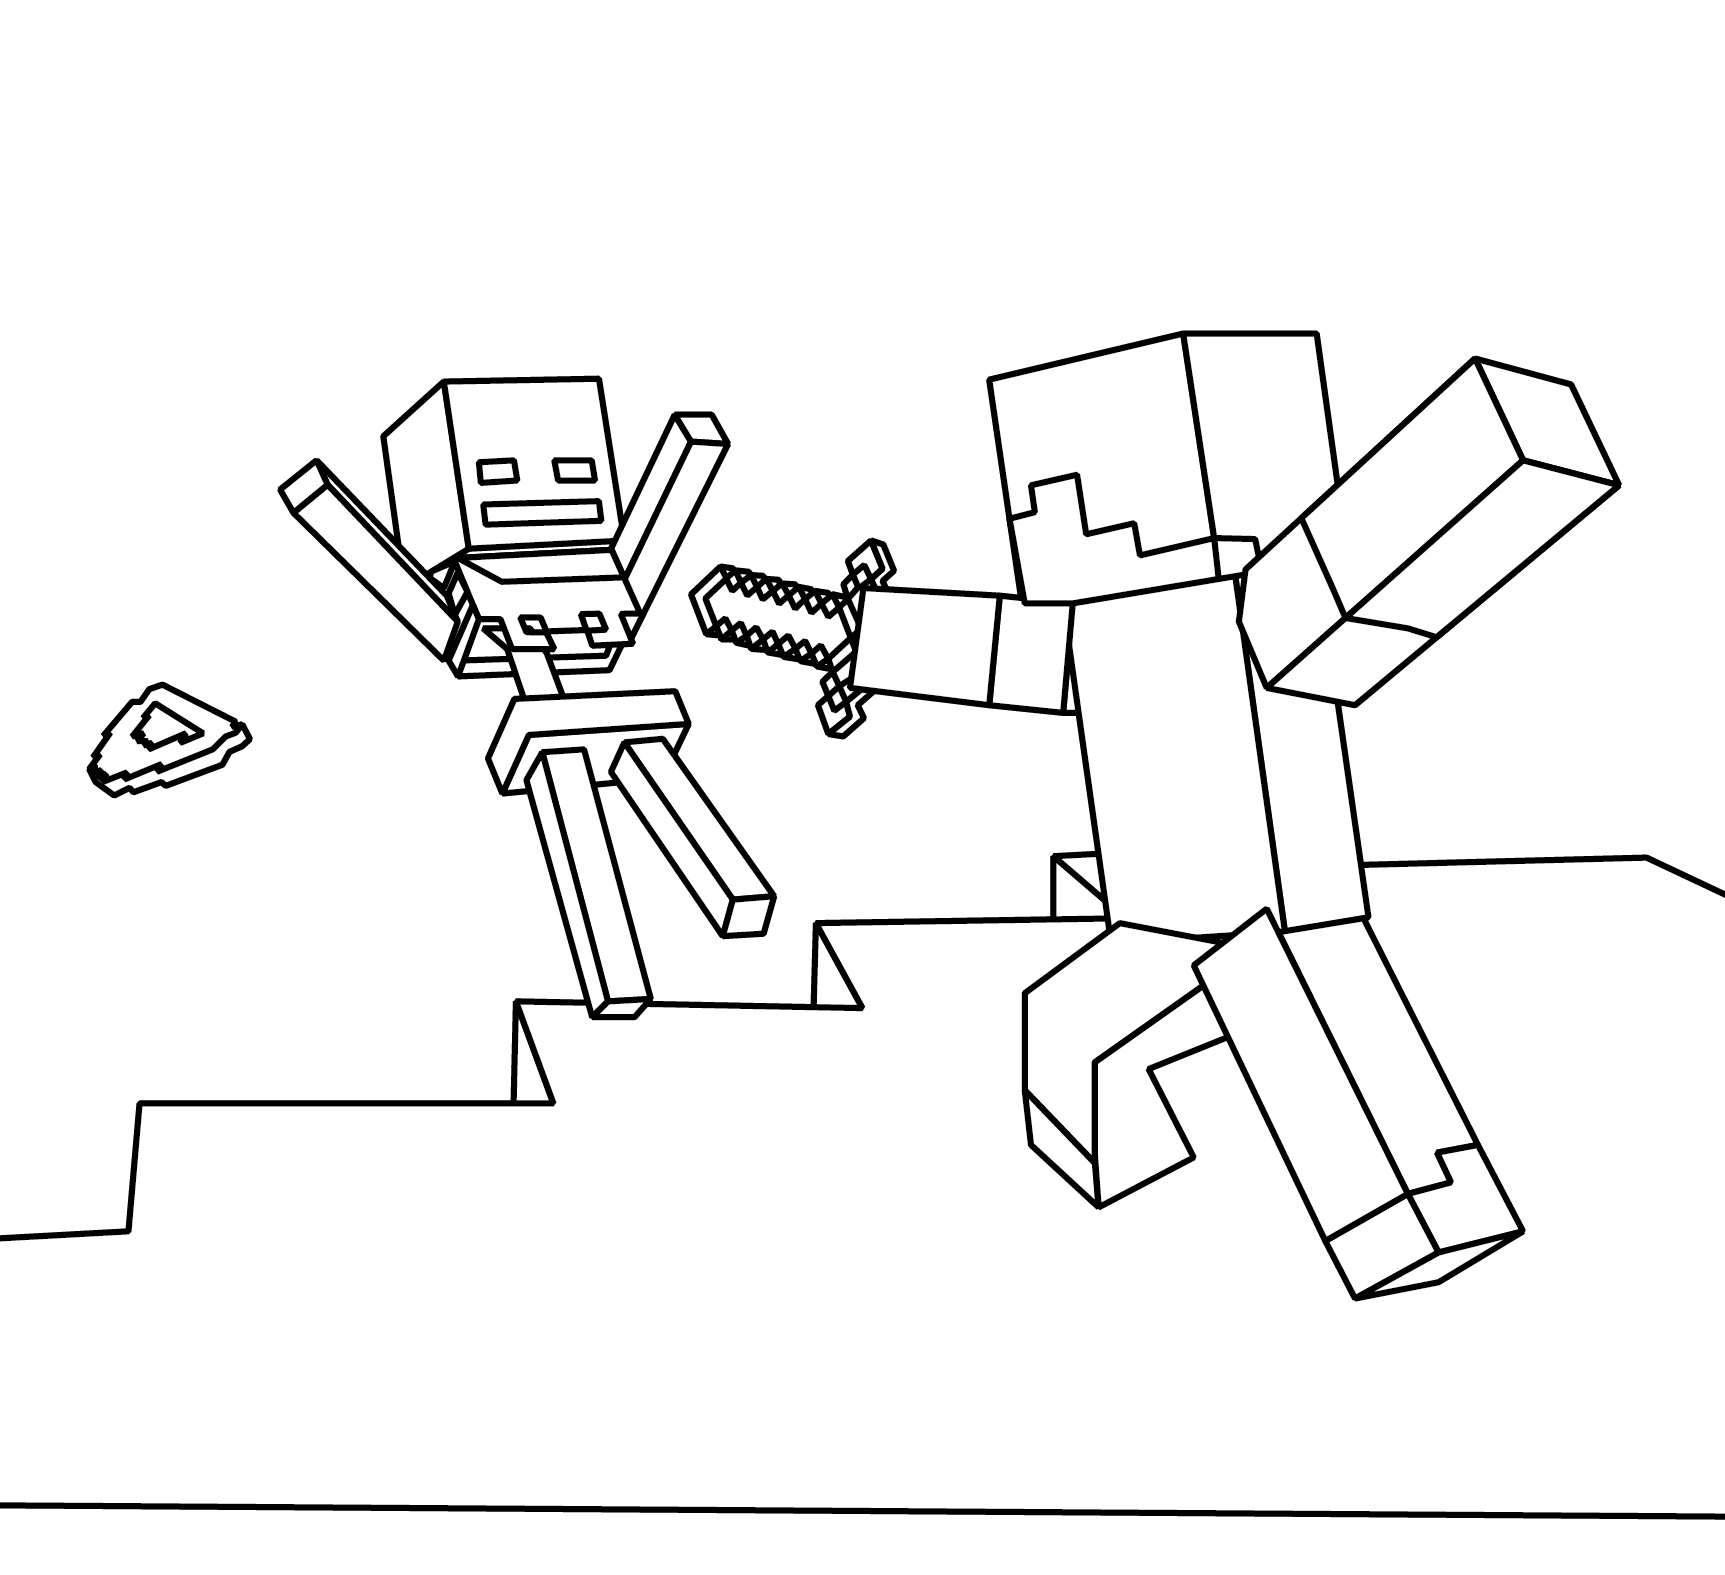 images of minecraft coloring pages minecraft coloring pages print and colorcom images of minecraft coloring pages